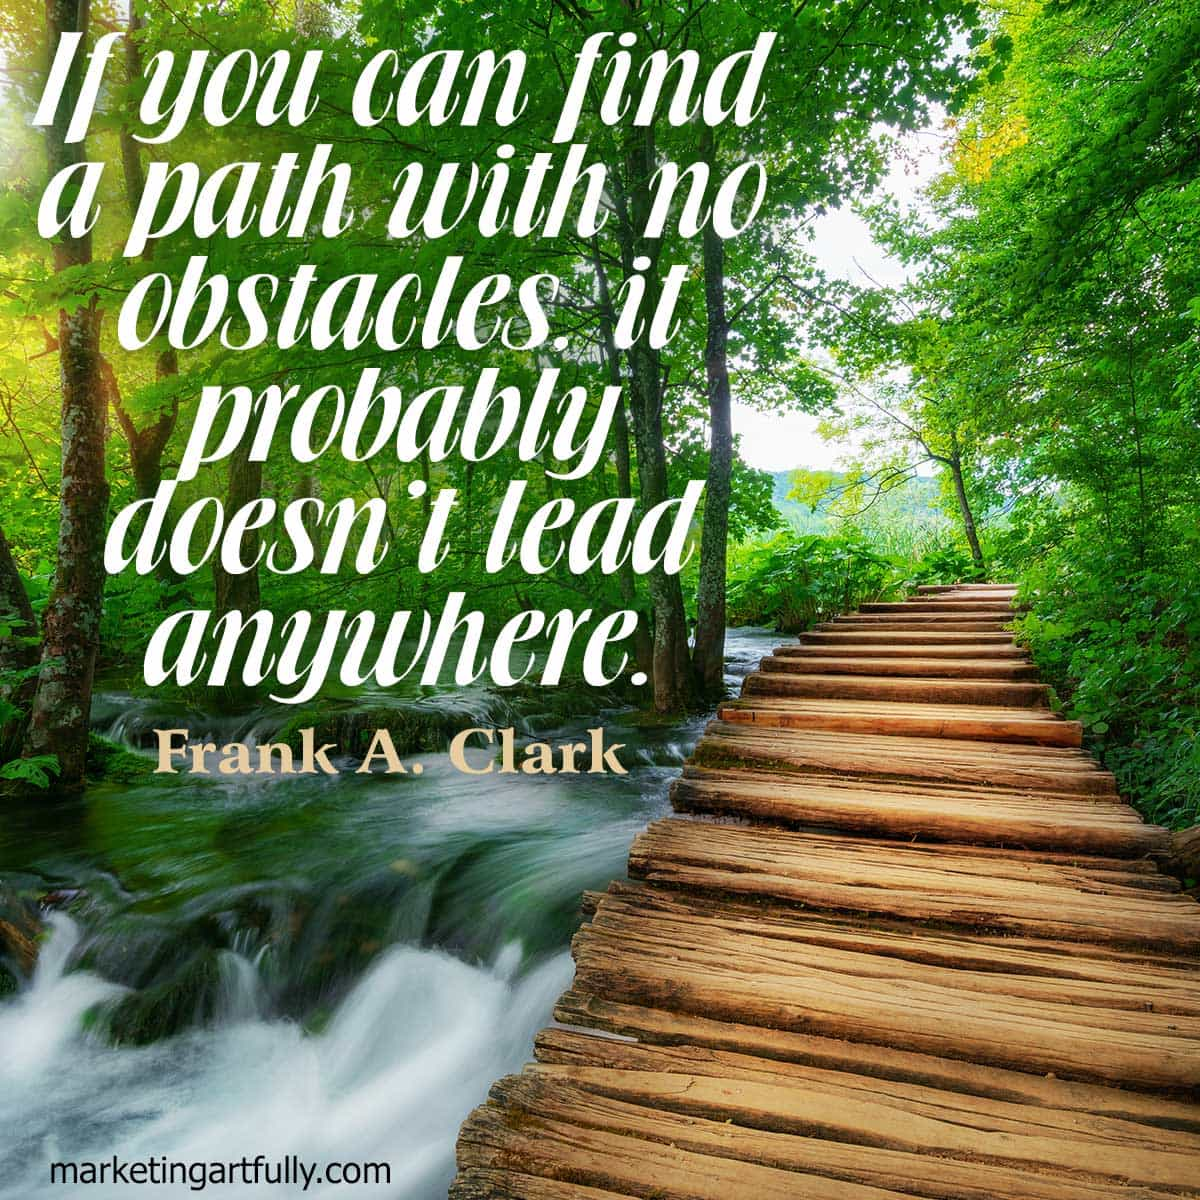 If you can find a path with no obstacles, it probably doesn't lead anywhere.Frank A. Clark